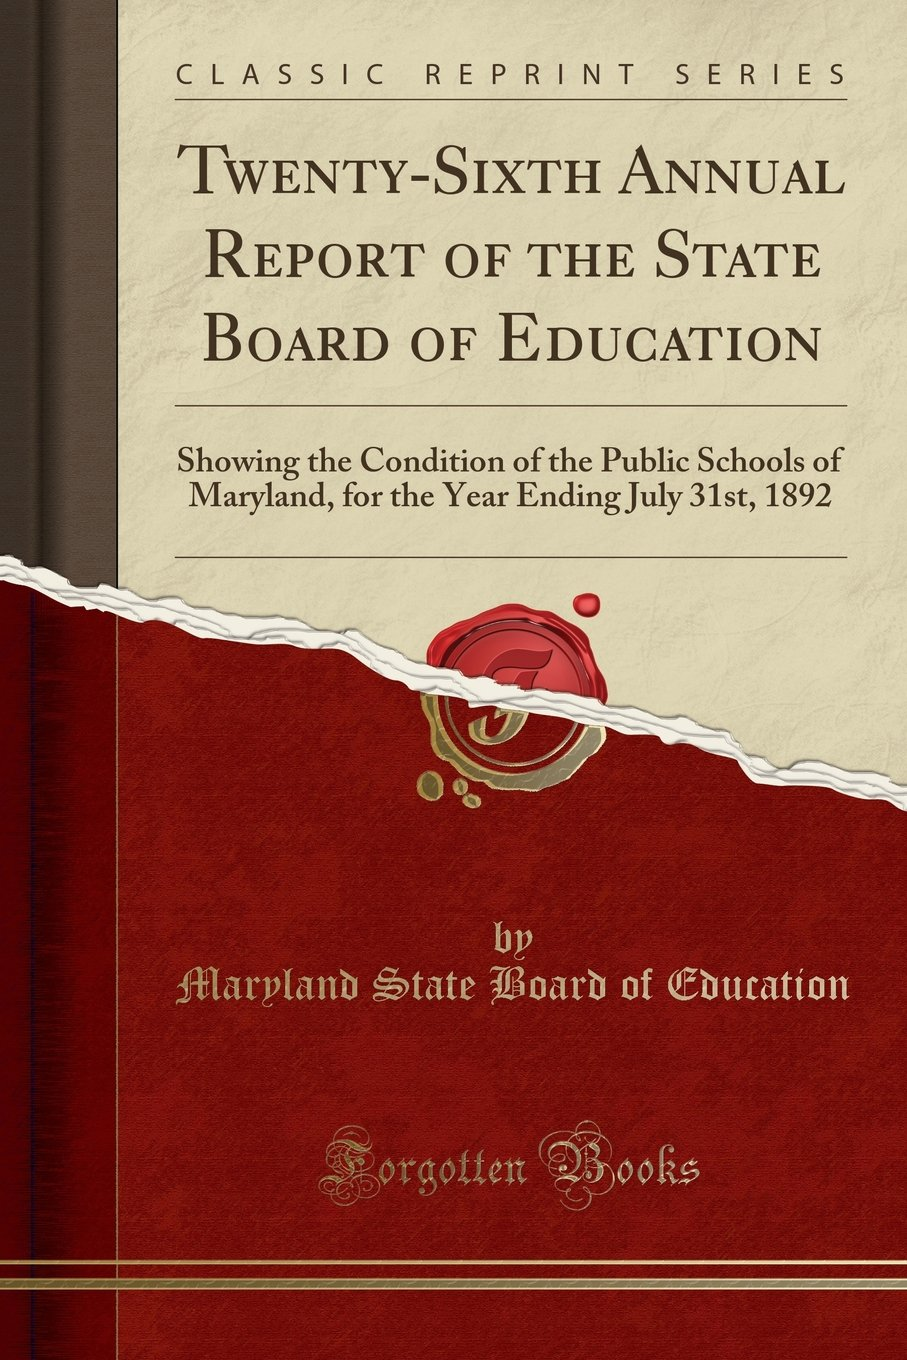 Twenty-Sixth Annual Report of the State Board of Education: Showing the Condition of the Public Schools of Maryland, for the Year Ending July 31st, 1892 (Classic Reprint) ebook